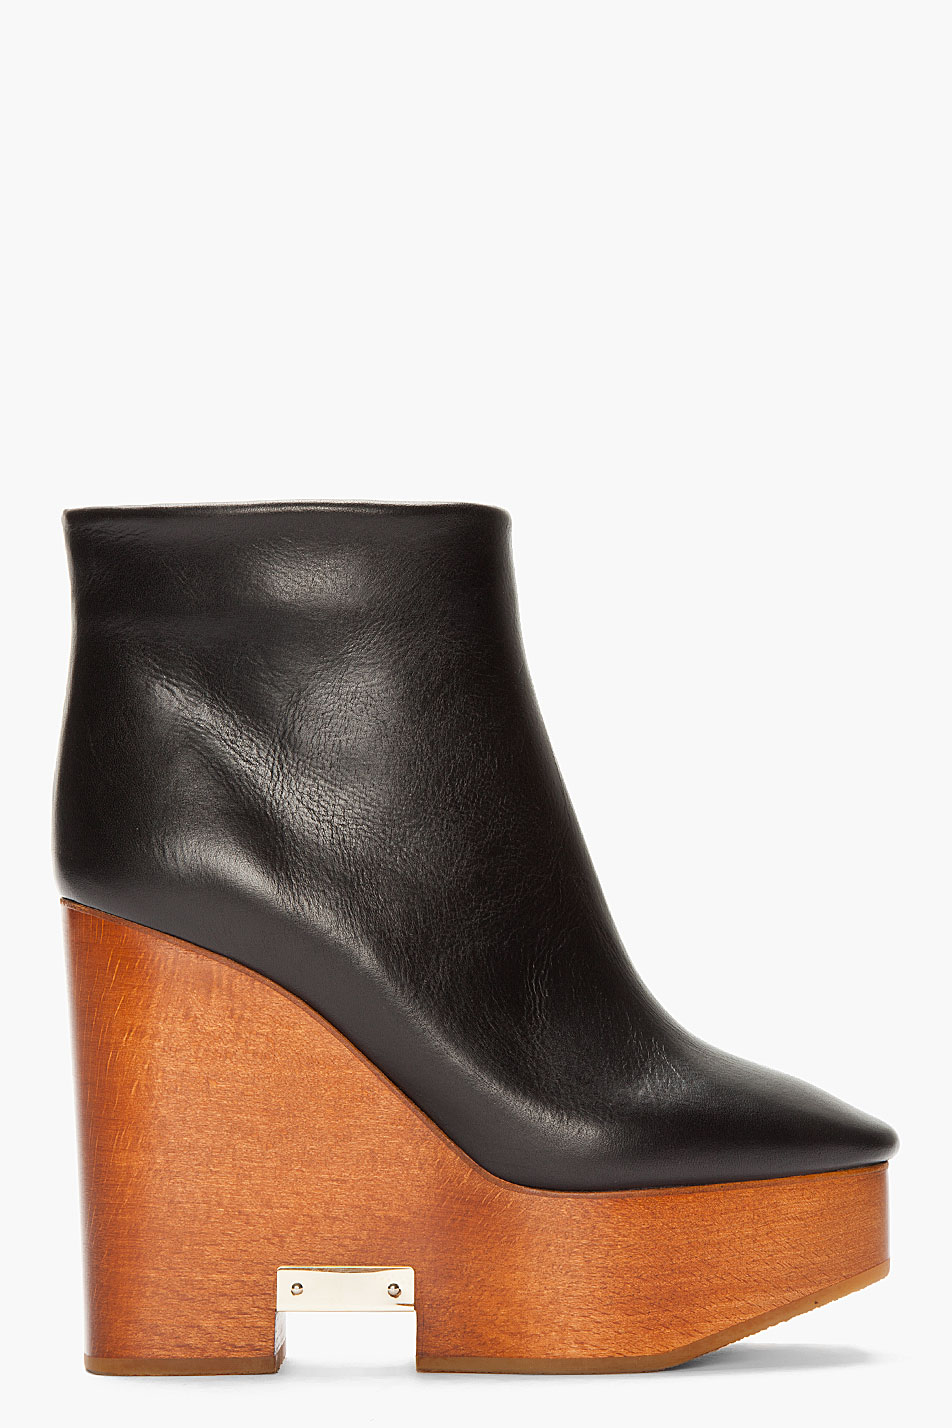 Chloé Leather Platform Boots buy cheap online buy cheap find great hwI3ElACY